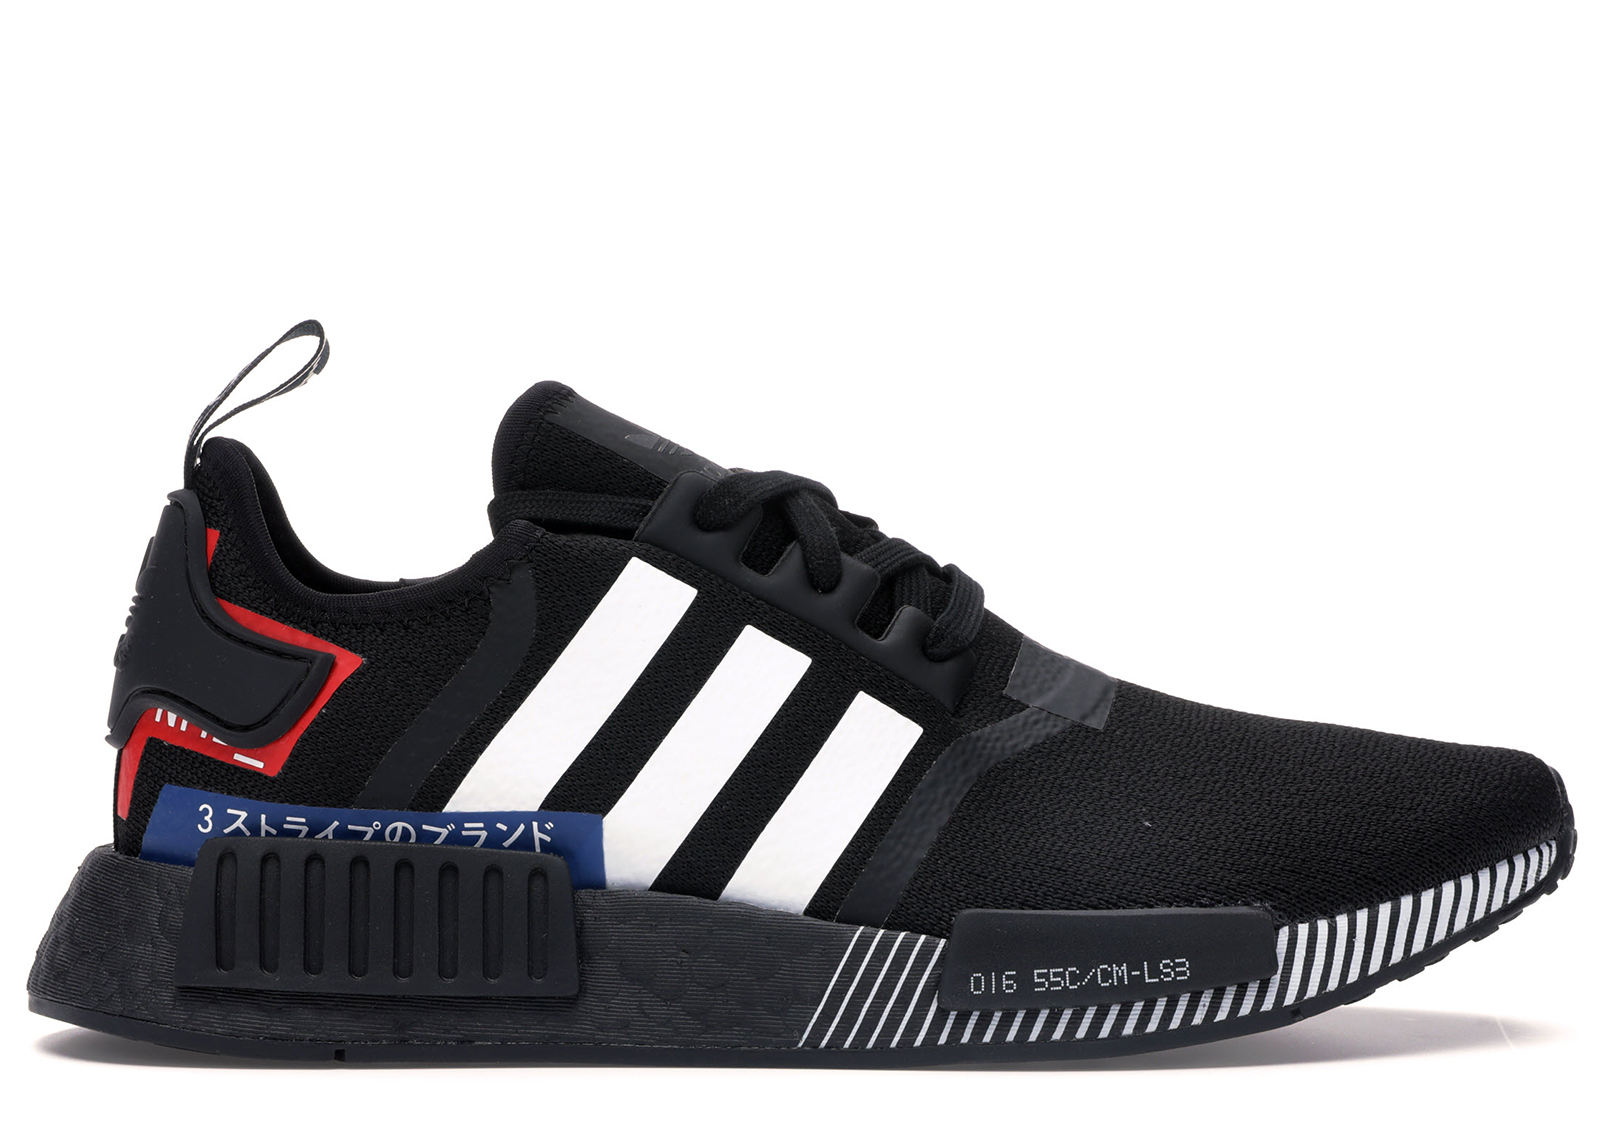 Adidas NMD R1 Blue Tab Shoes Men's BlackBlue S31515 Size